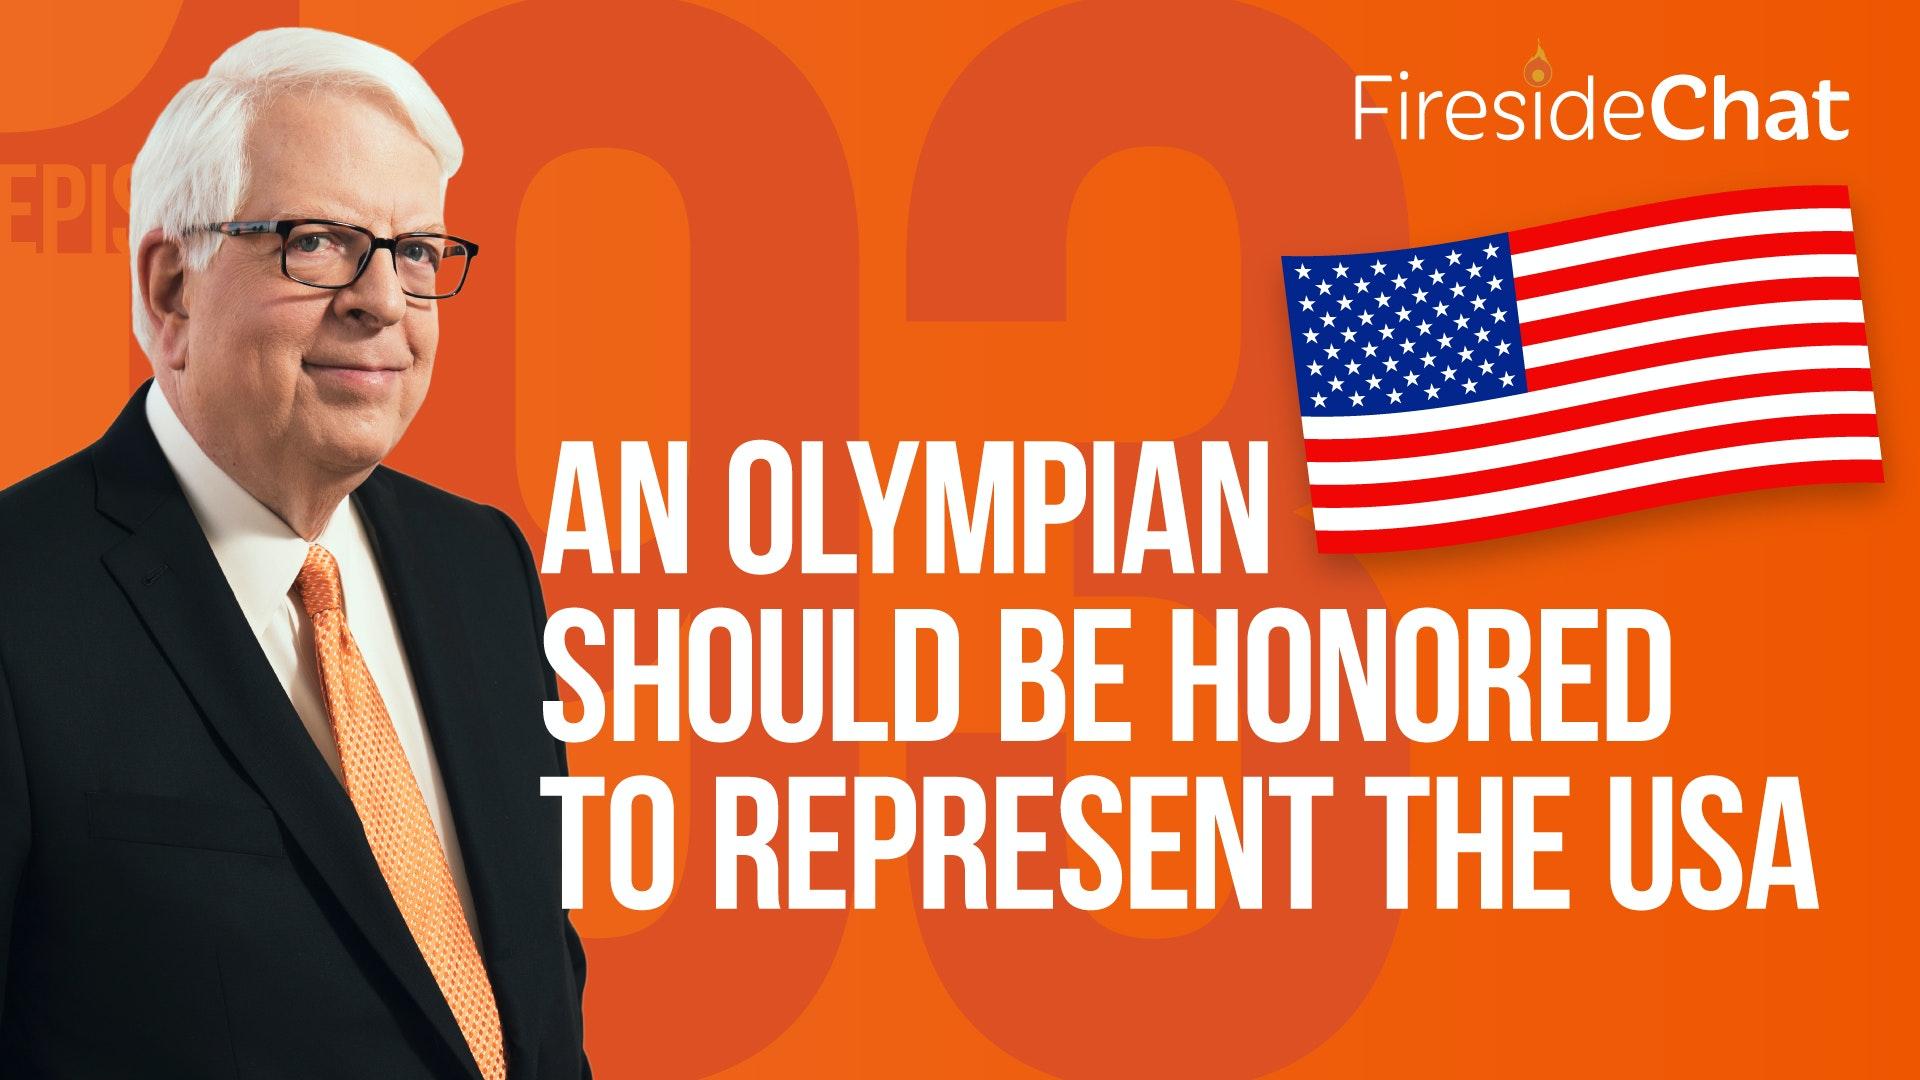 Ep. 193 — An Olympian Should Be Honored to Represent the USA